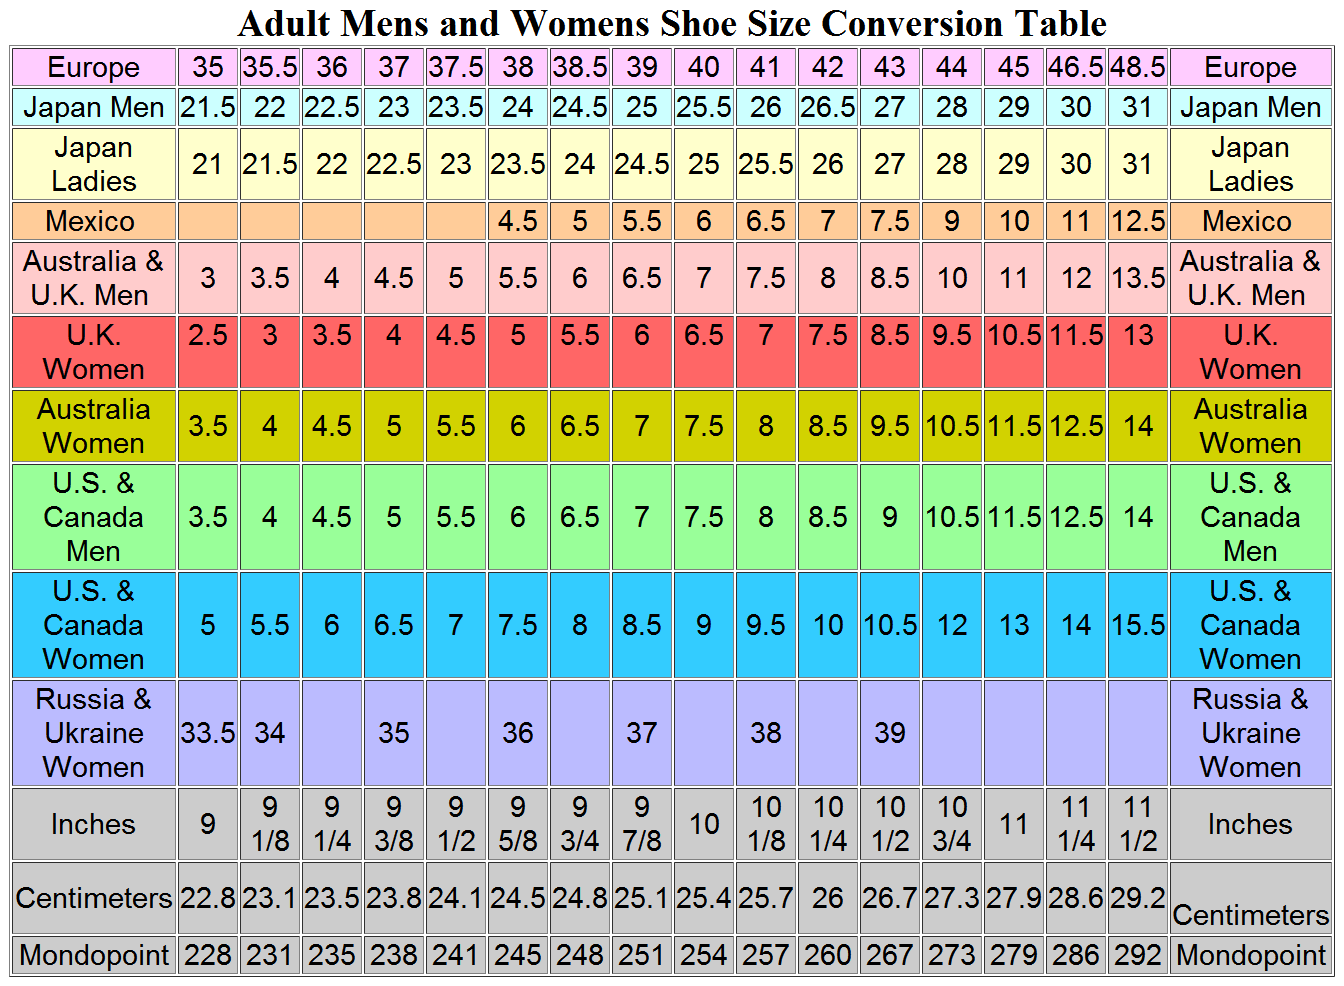 Info junction blog shoe size conversion table for men women shoe size conversion table for men women geenschuldenfo Image collections